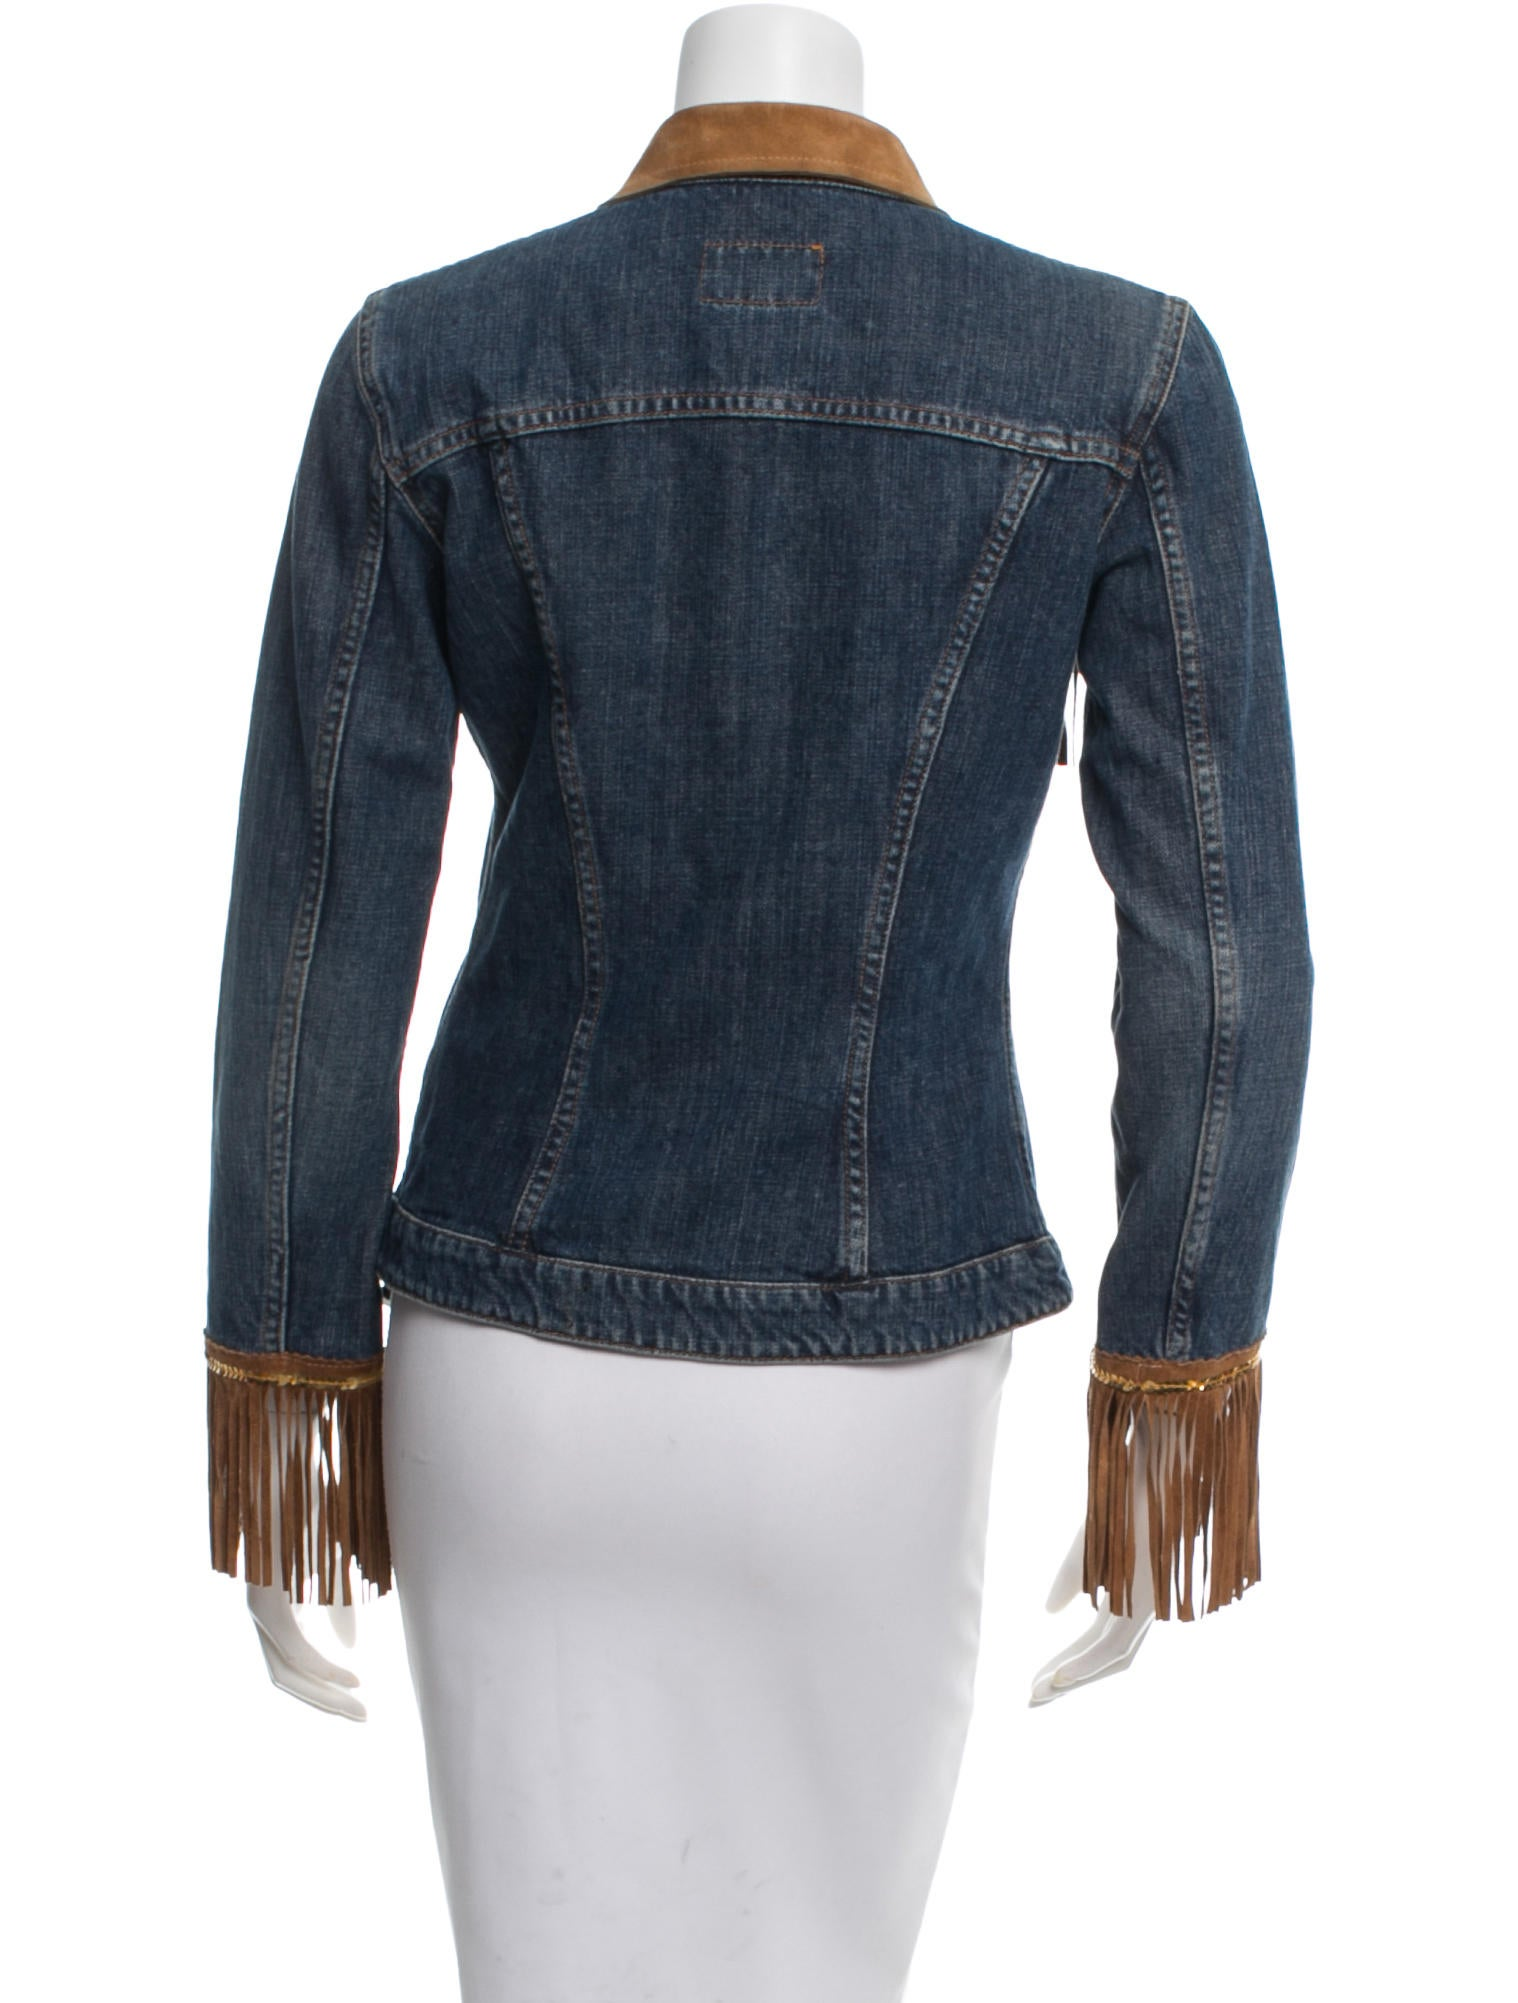 Reed's Men's Western Jean Style Suede Leather Shirt Jacket. from $ out of 5 stars Allegra K. Women's Zip up Cuffs Draped Front Faux Suede Jacket. from $ 16 99 Prime. out of 5 stars 7. Decrum. Brown Suede Leather Jacket - Iowa Swedish B2 Bomber Jacket. from $ out of 5 stars